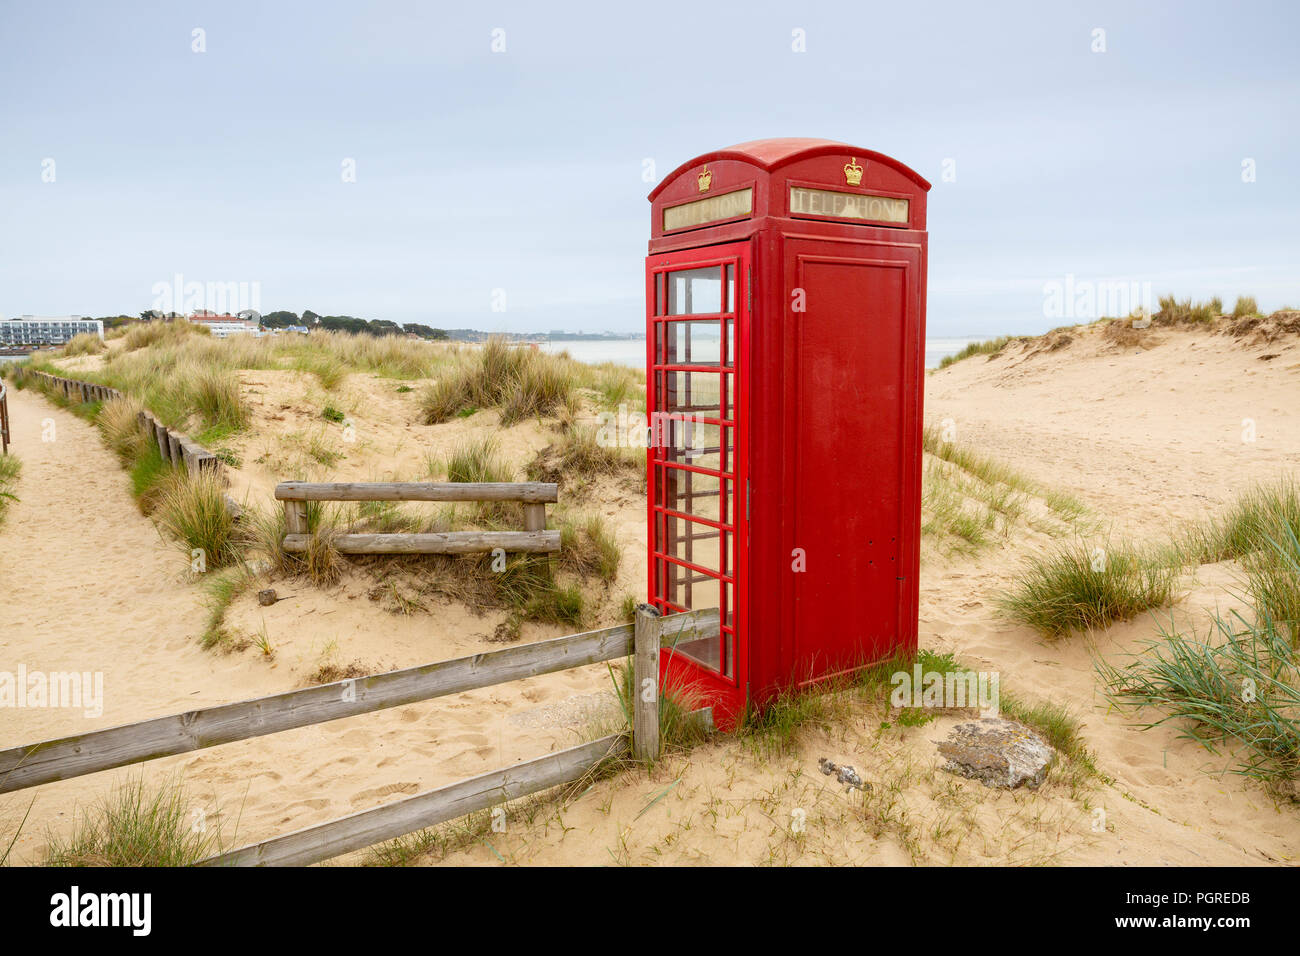 A bright red telephone box on the sand dunes at South Haven Point in Dorset at the end of the 630 mile South West Coast Path in England, UK. - Stock Image